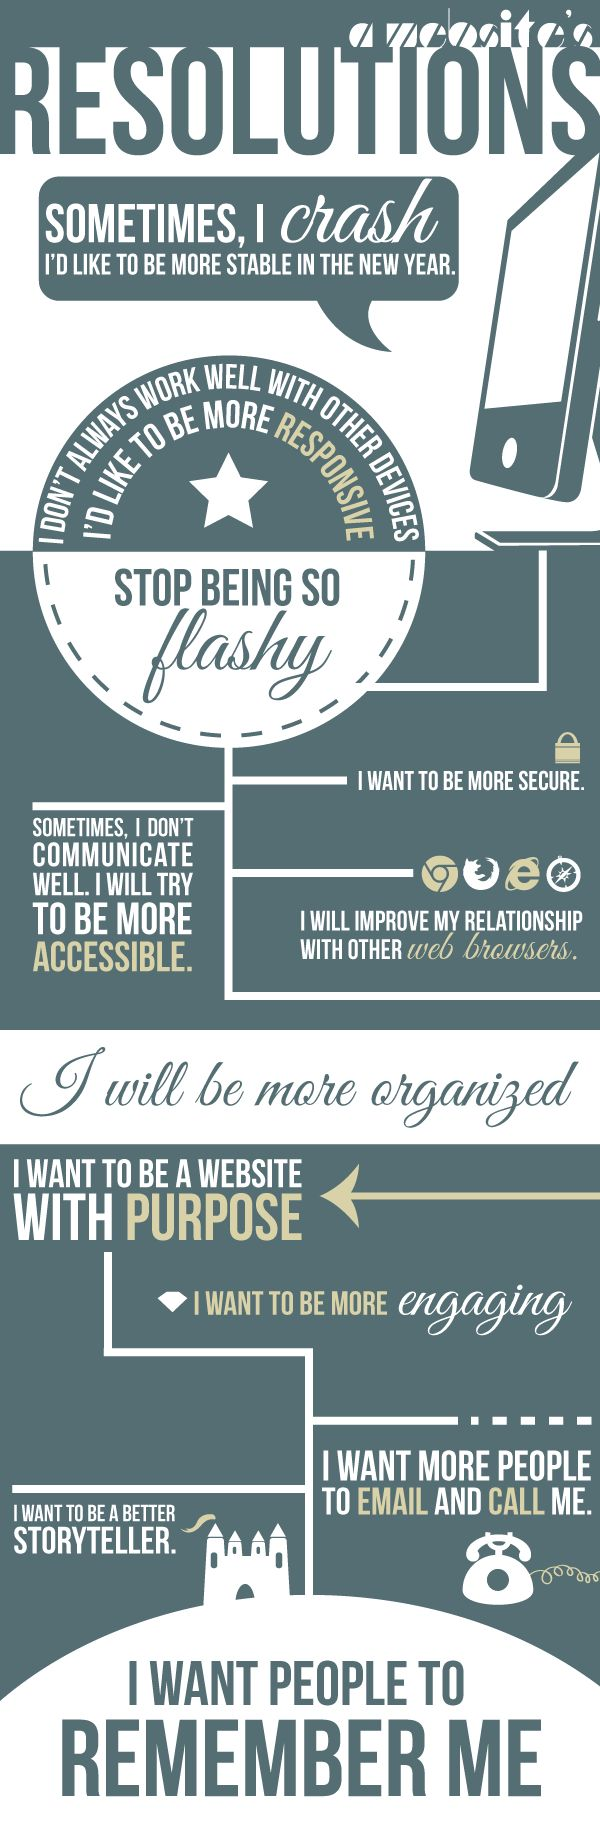 website resolutions for the new year! #web #design #infographic